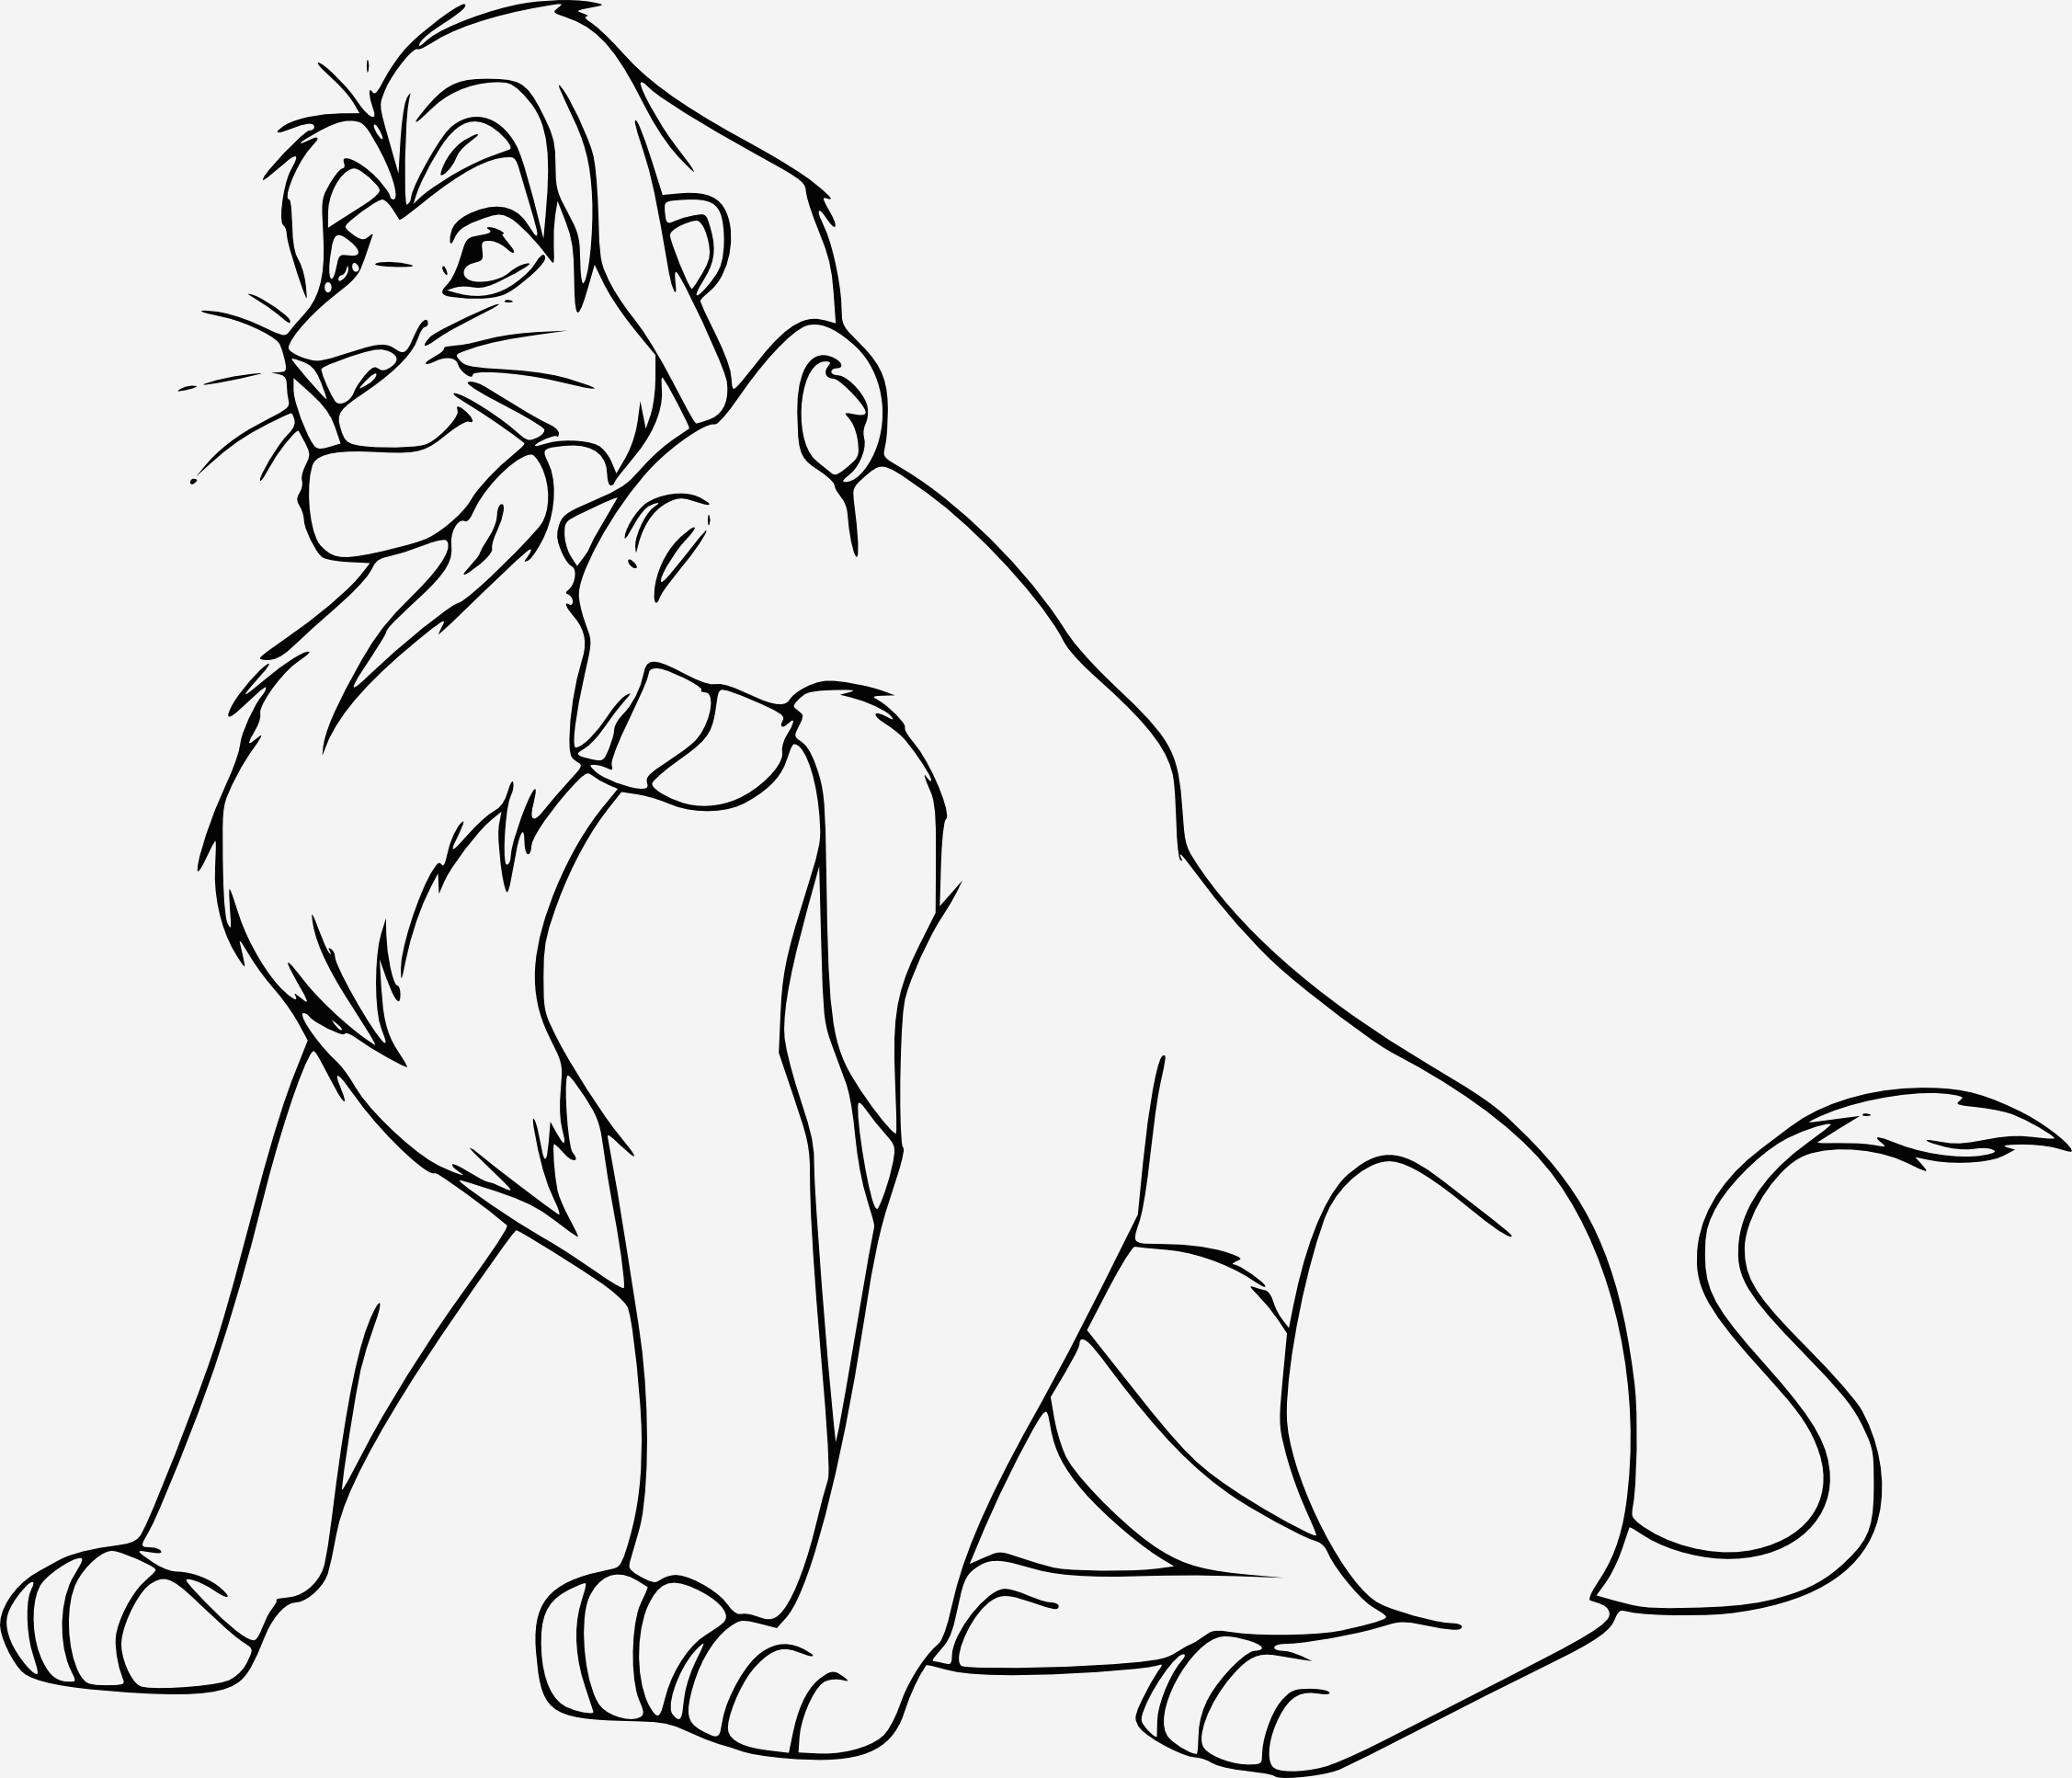 Coloriage Simba A Imprimer Gratuit Awesome Coloriage Simba Et Nala   Imprimer Et Colorier